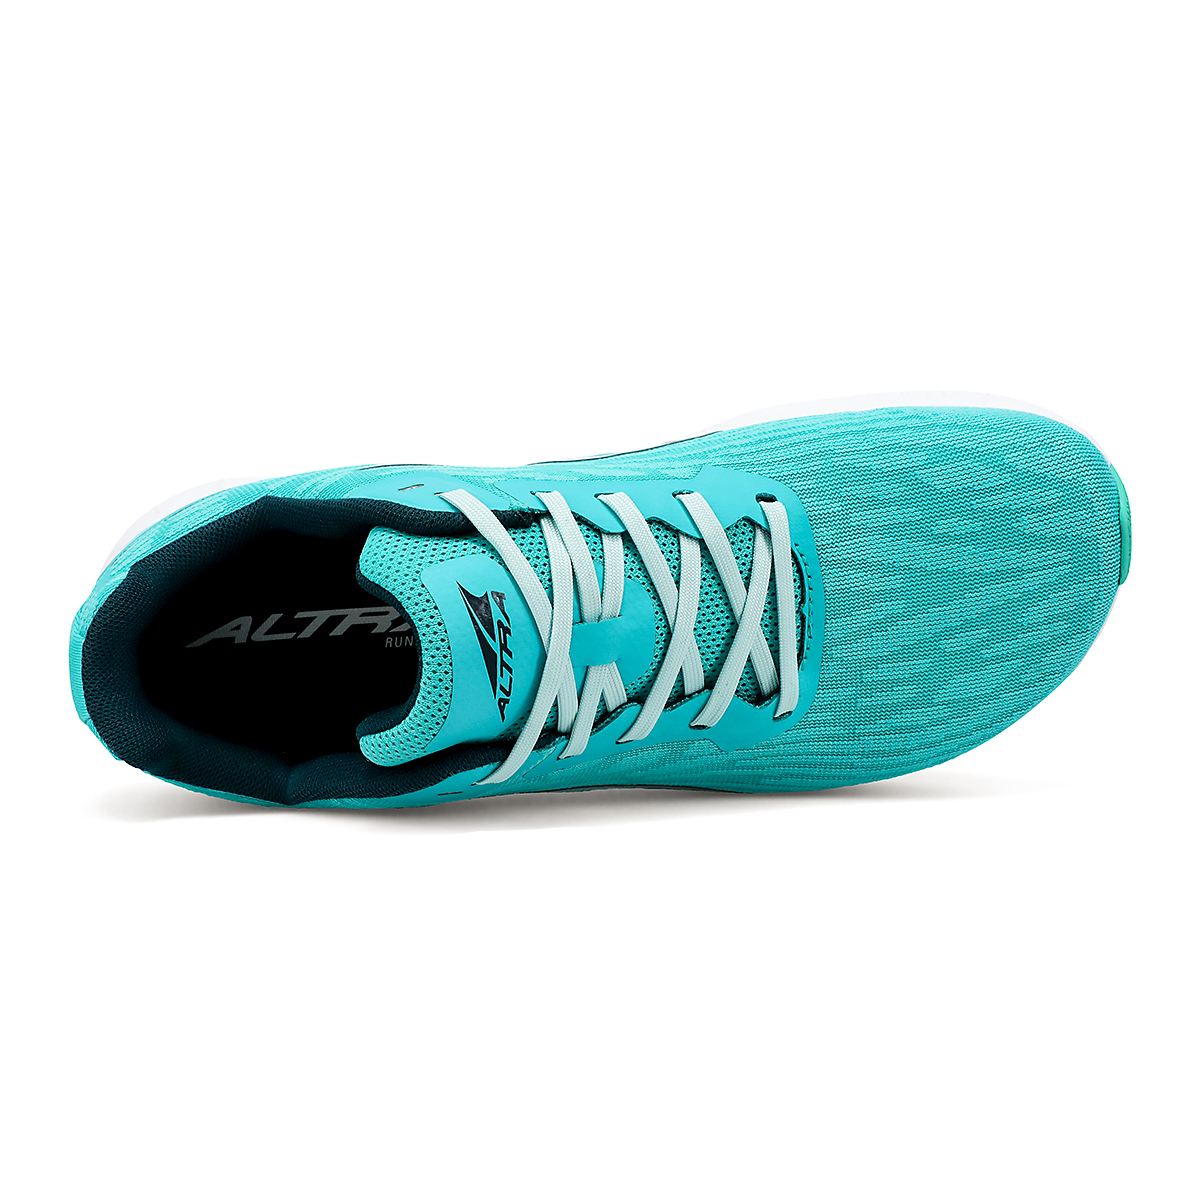 Women's Altra Rivera Running Shoe - Color: Teal/Green - Size: 5.5 - Width: Regular, Teal/Green, large, image 3